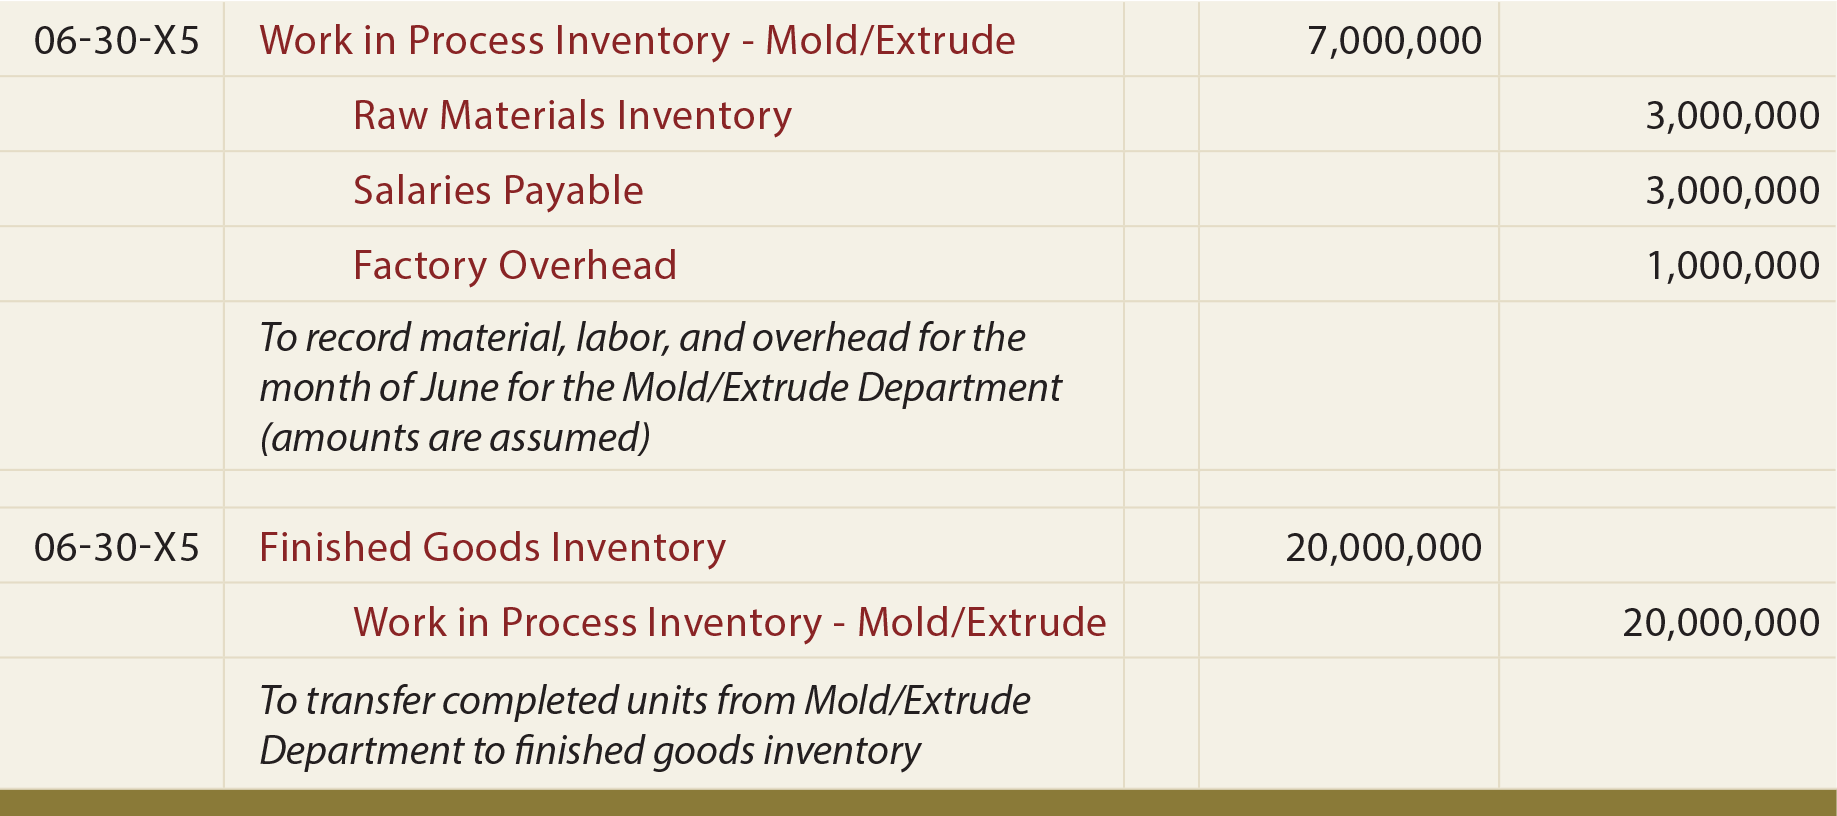 Mold/Extrude Department Journal Entries